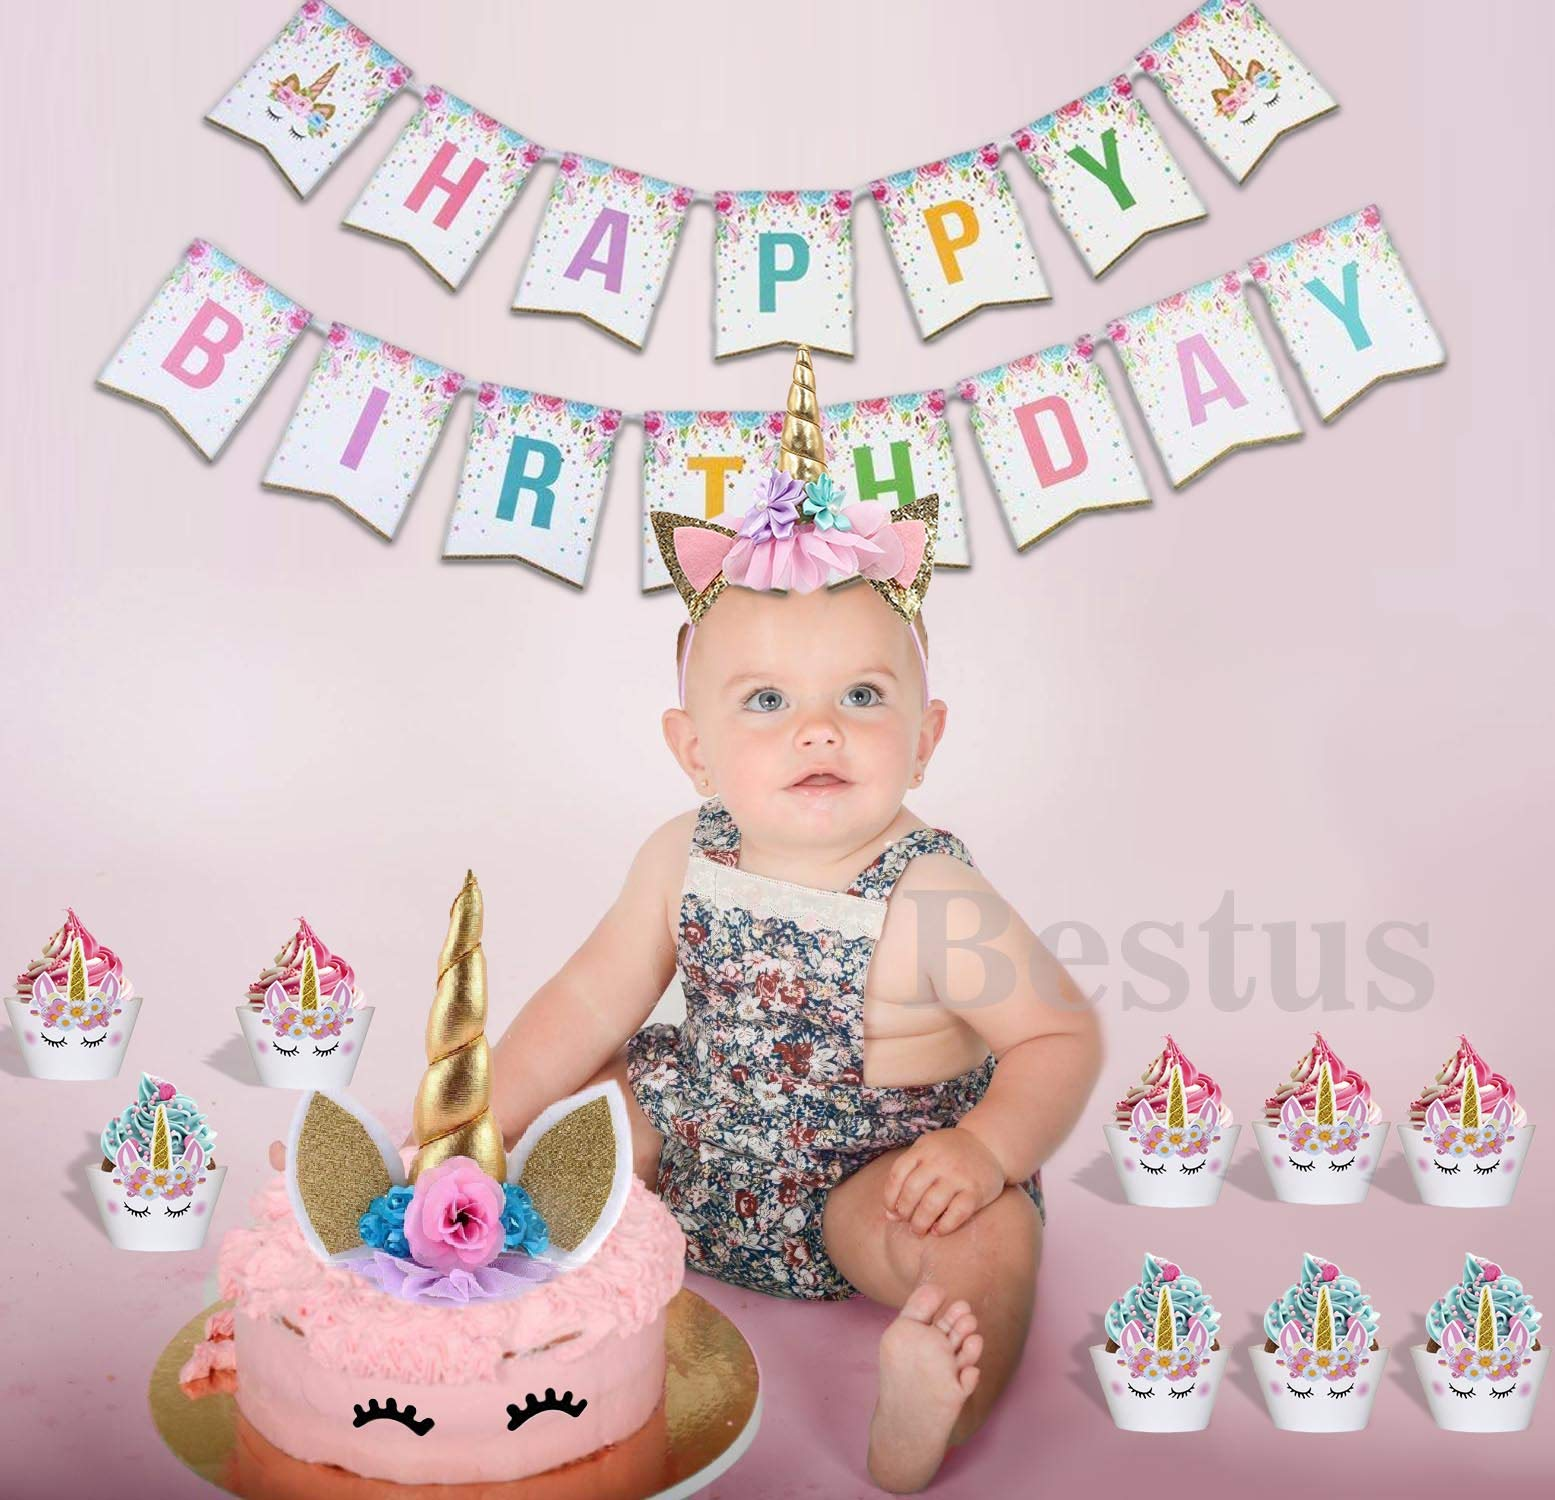 Bestus (29 Pack) Unicorn Cake Topper with Eyelashes, Headband, Cupcake Wrappers and Happy Birthday Banner. / Unicorn… 8